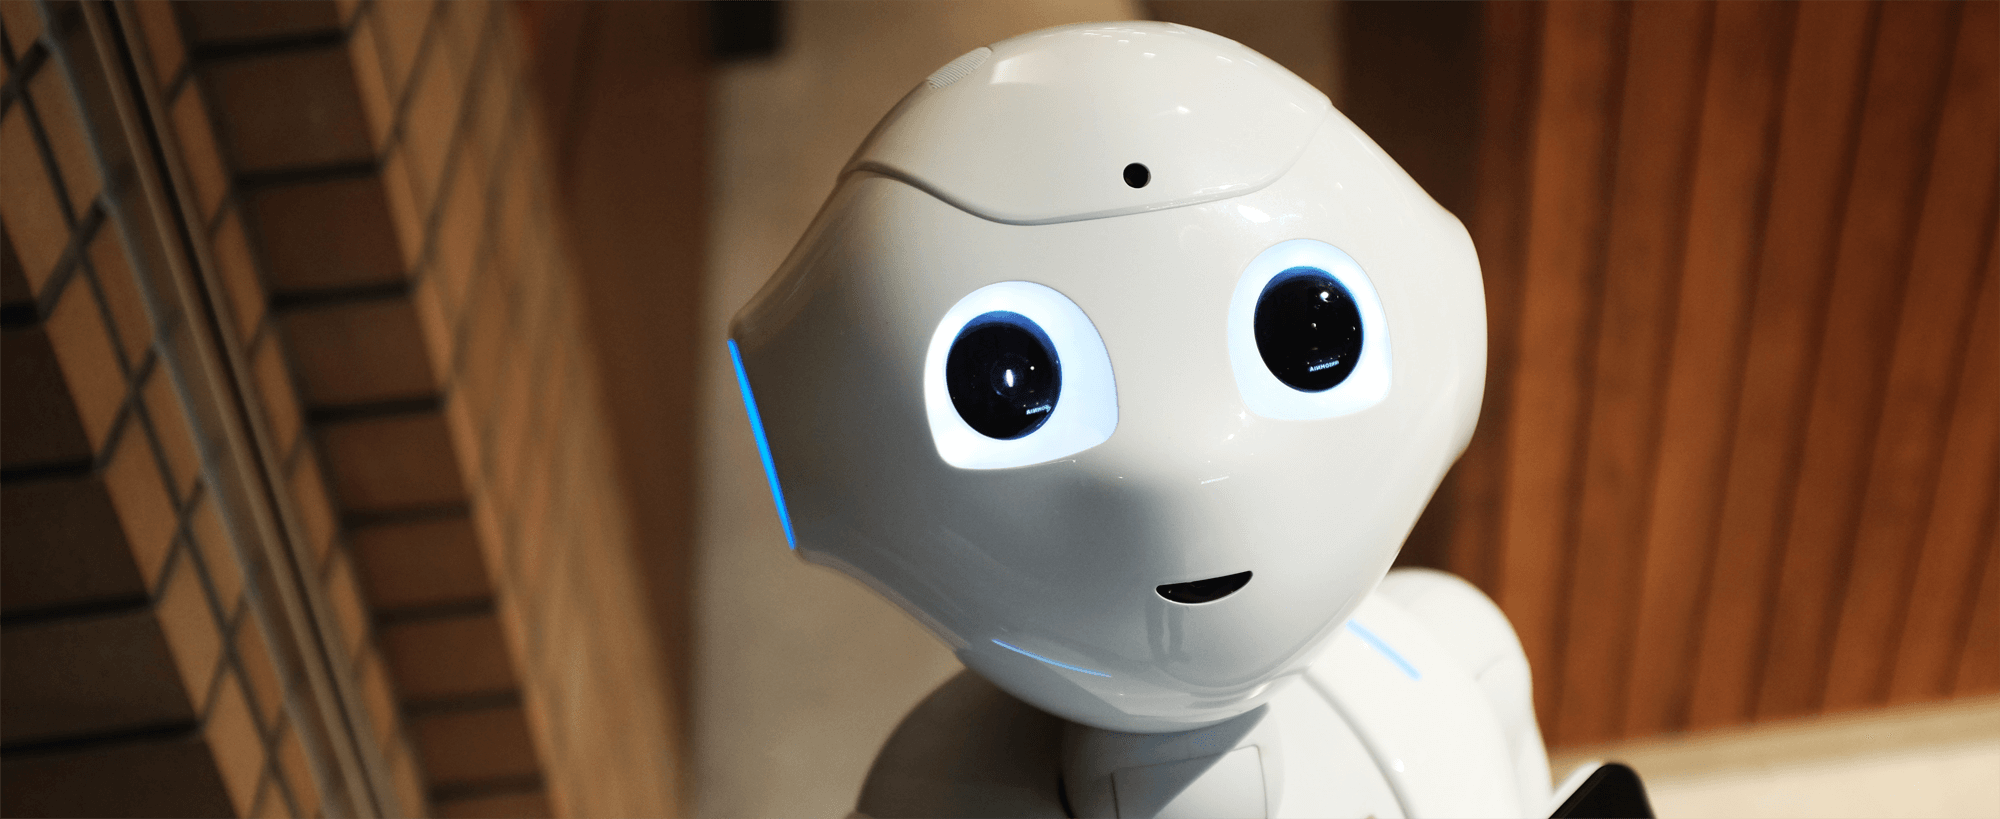 An image of a robot with human like features